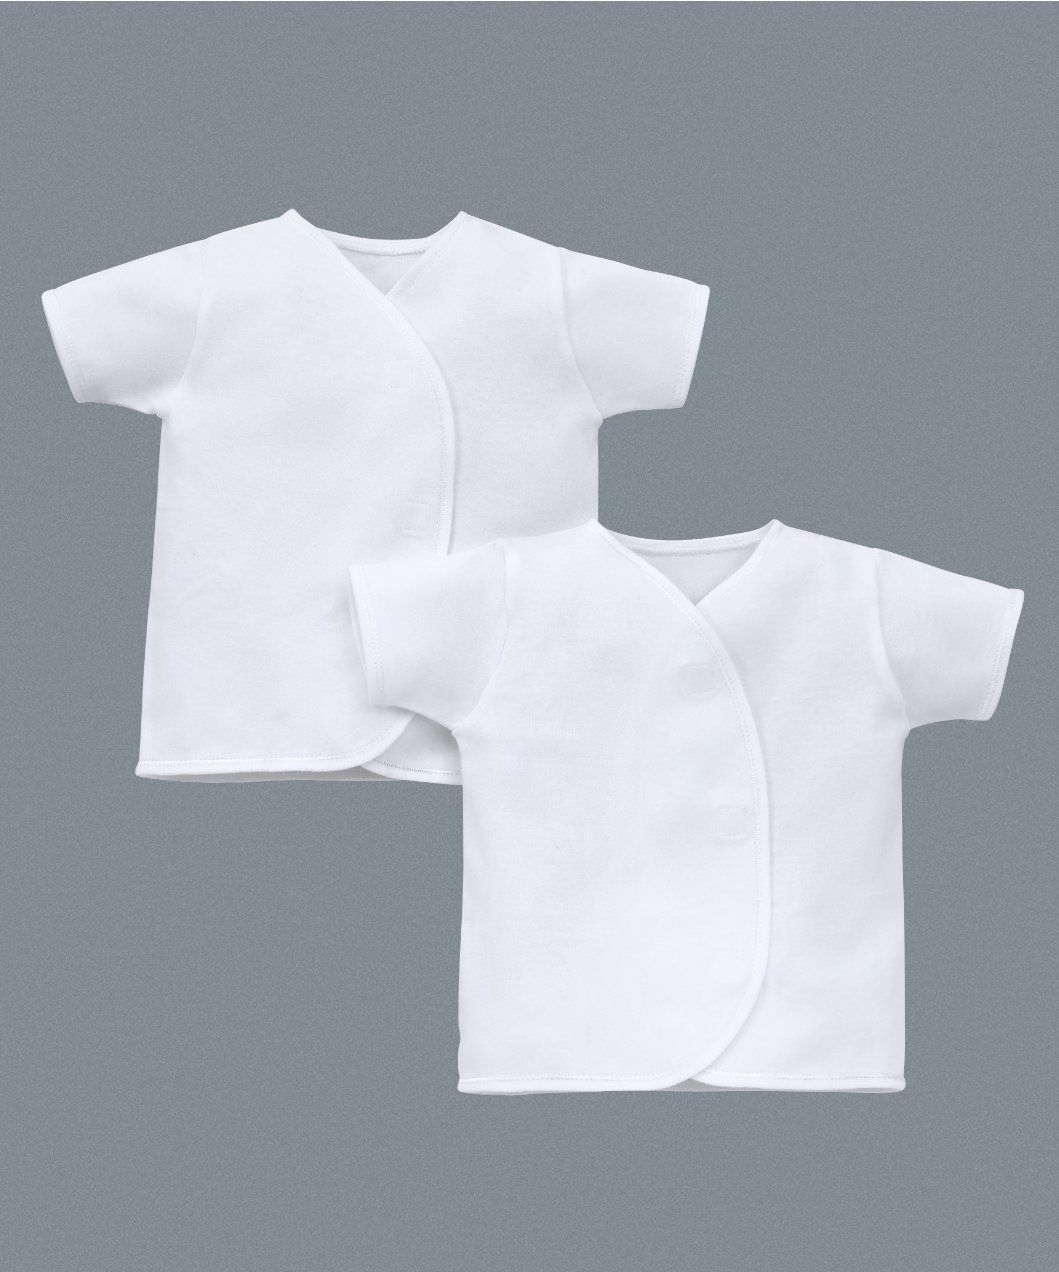 Mothercare My First Short Sleeve Wrap Vests 2 Pack Vests